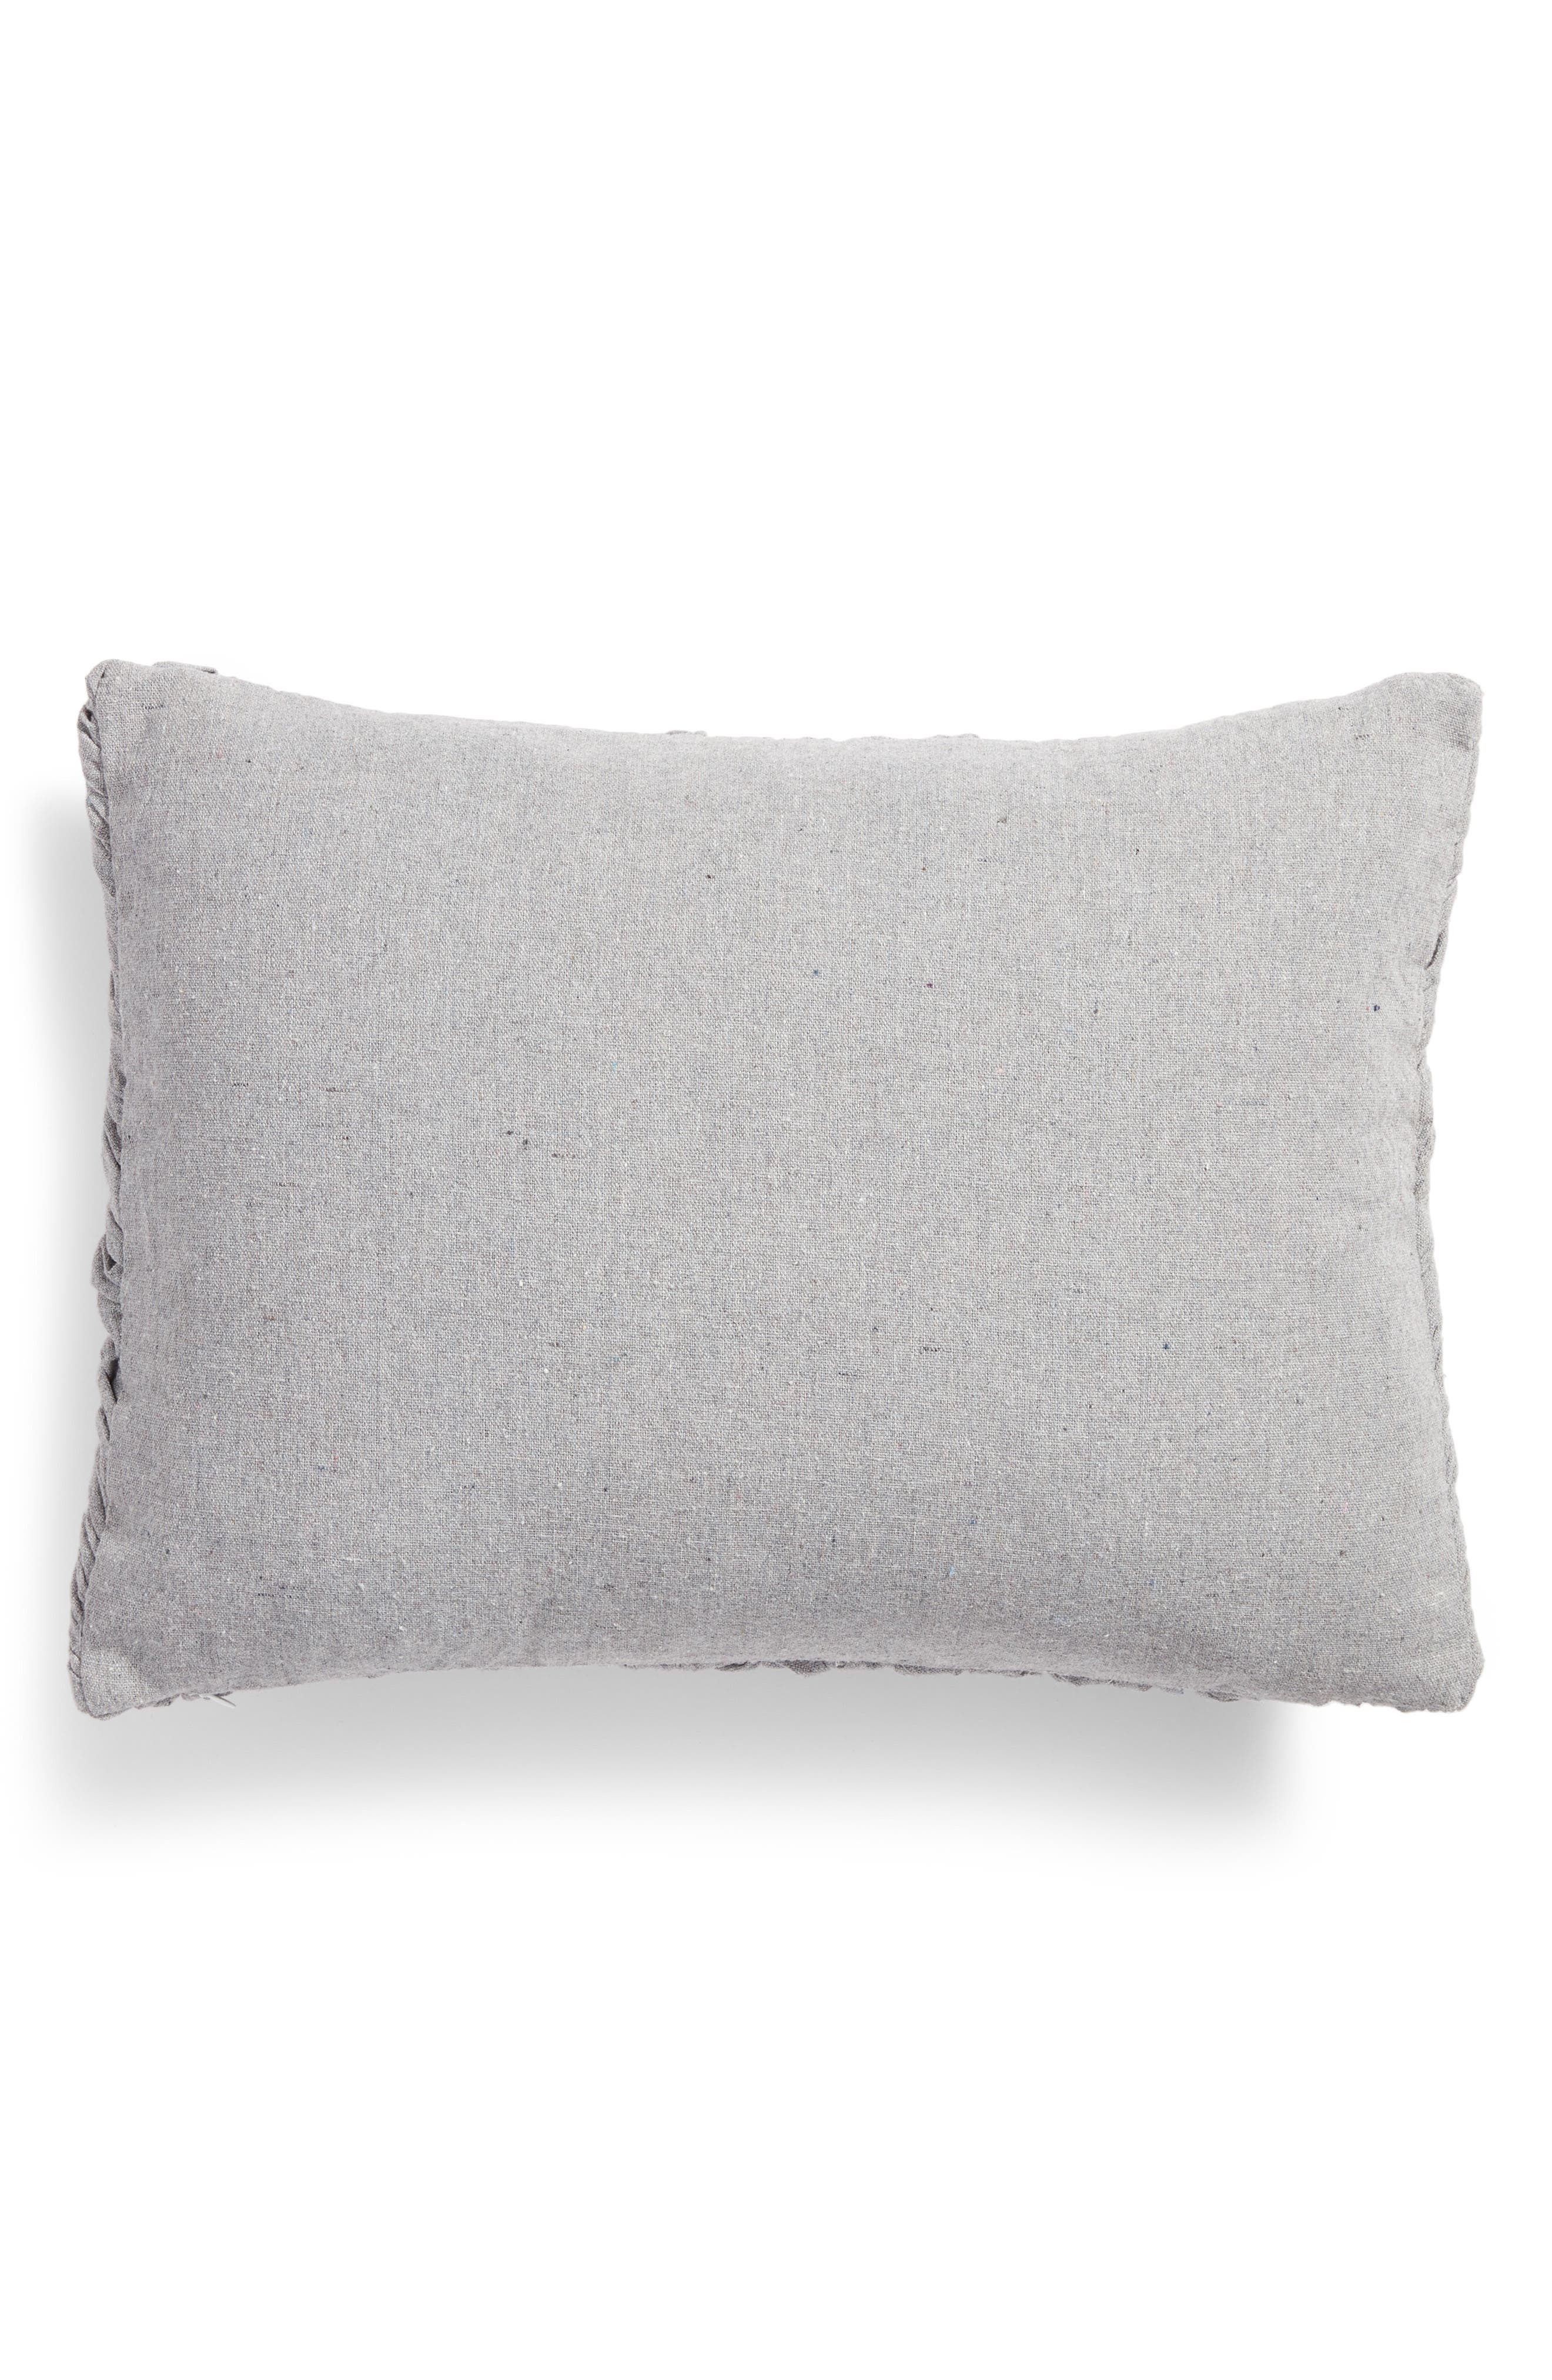 Remie Ruched Accent Pillow,                             Alternate thumbnail 2, color,                             020